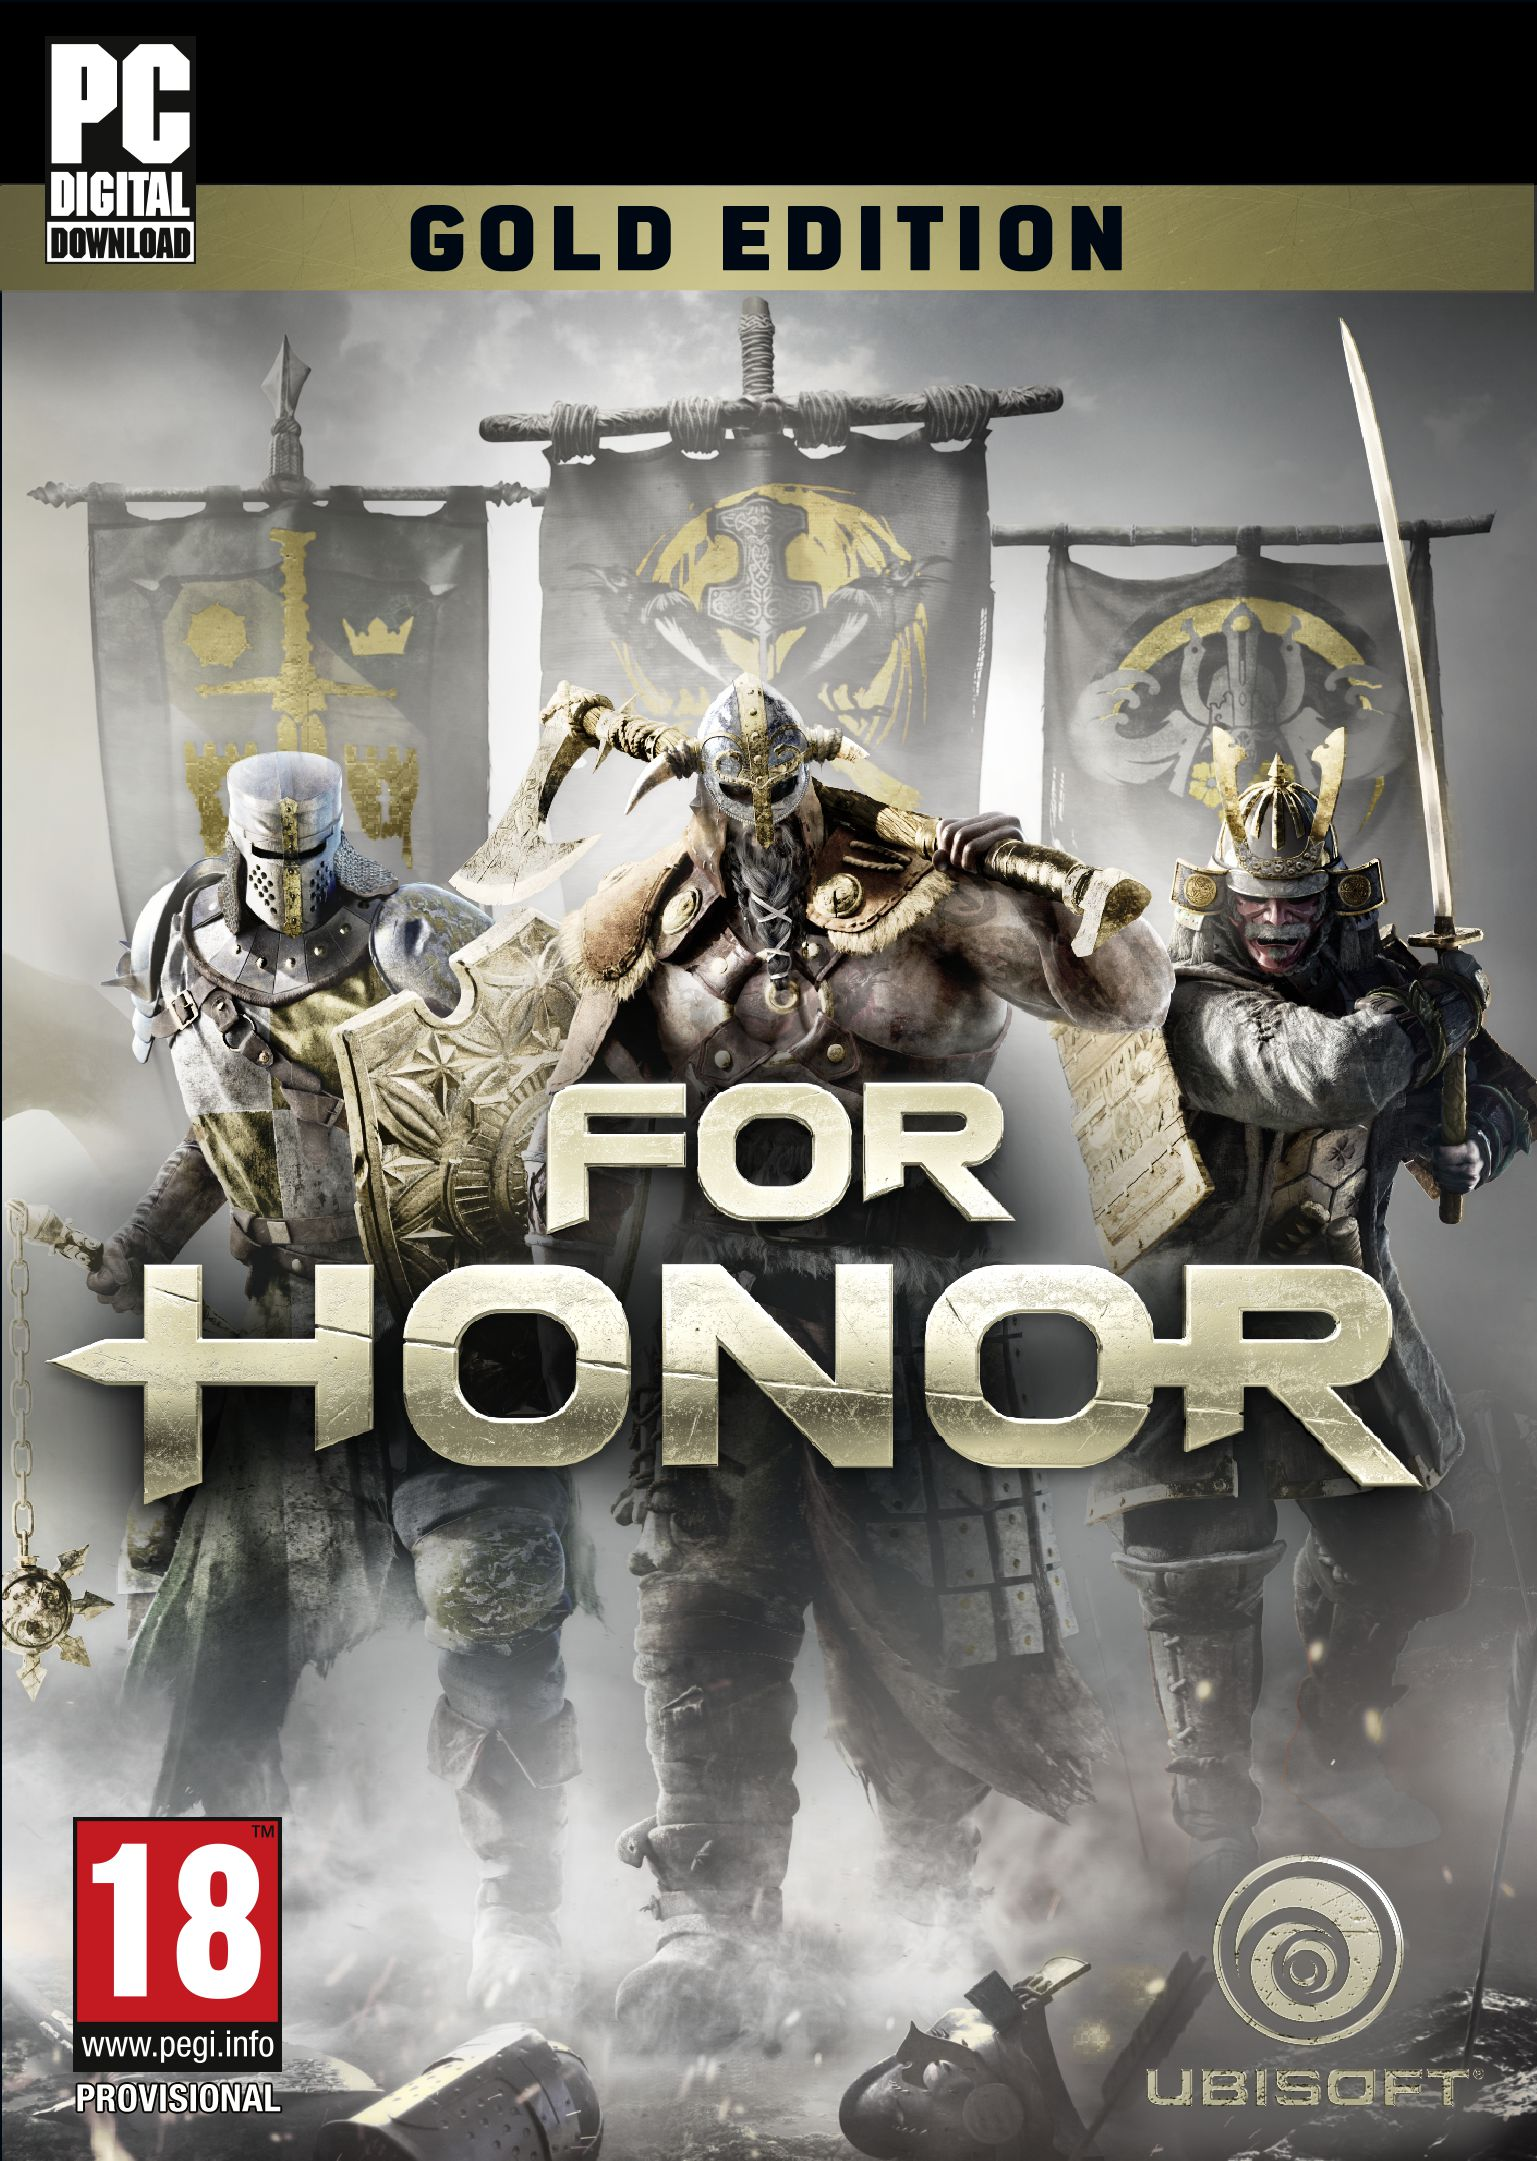 For Honor - Year 3 Pass - Year 3 Pass DLC | PC Download